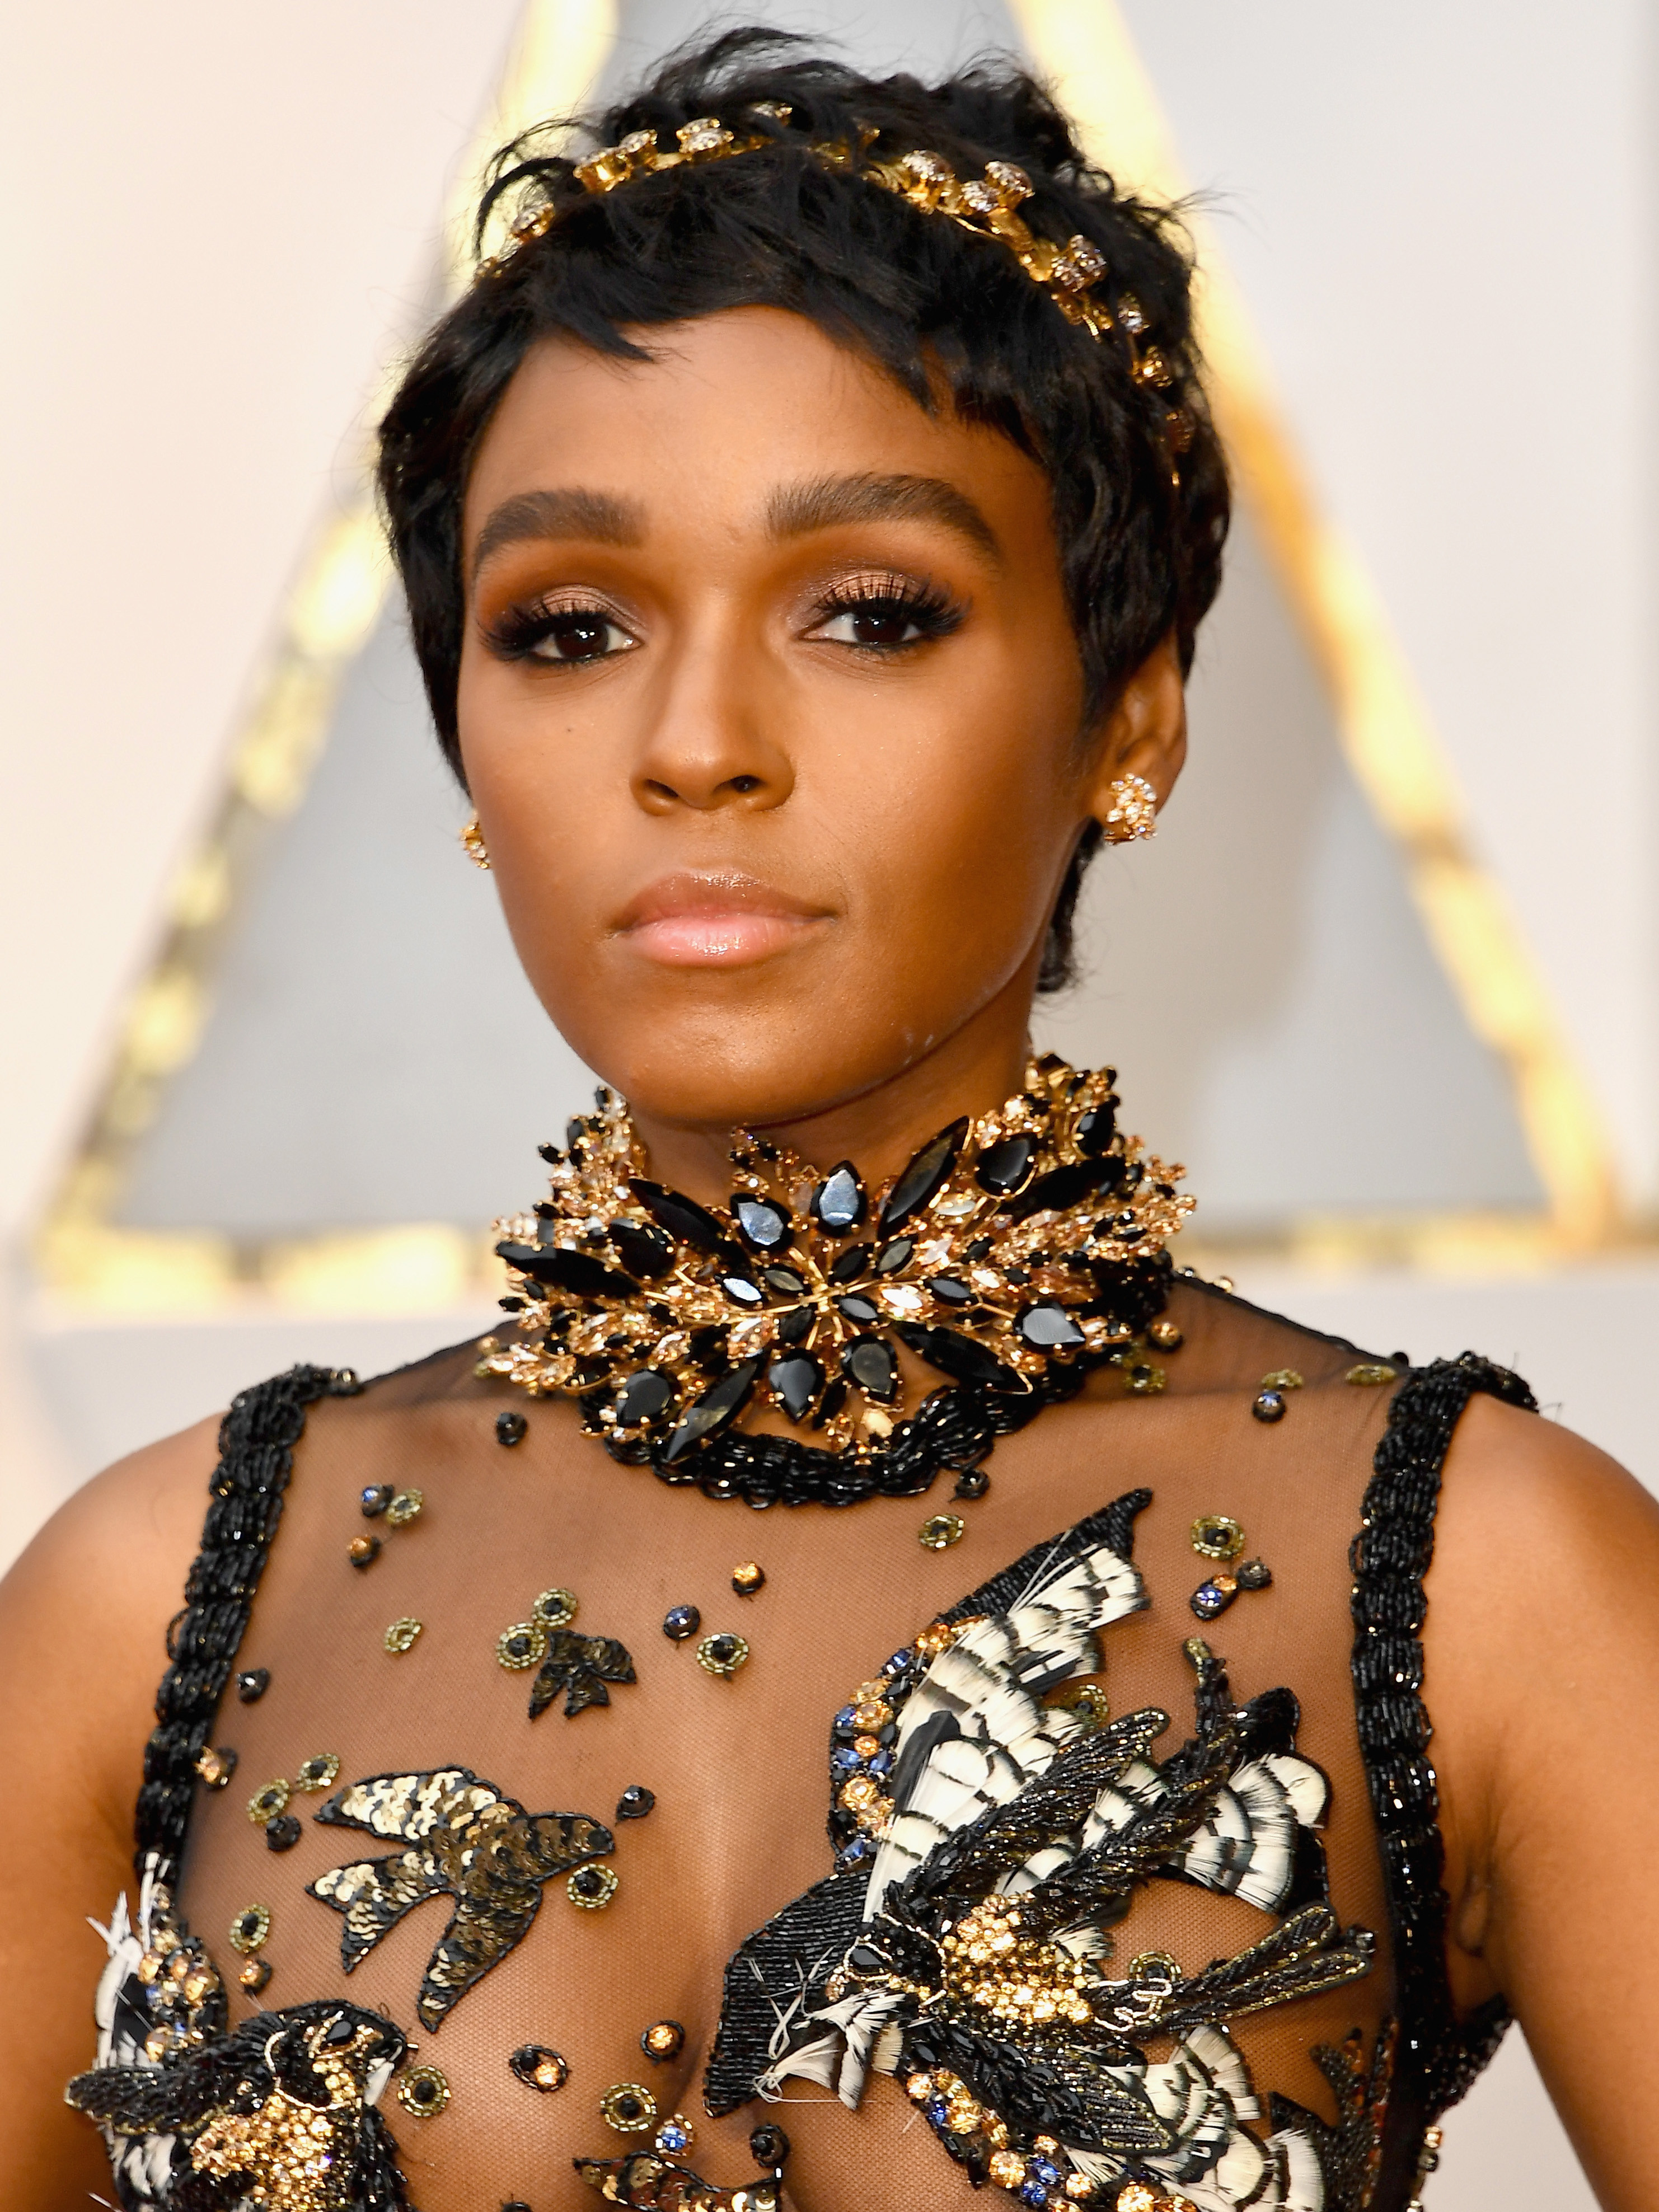 The Short Haircut That Ruled the Oscars Red Carpet  Byrdie.com